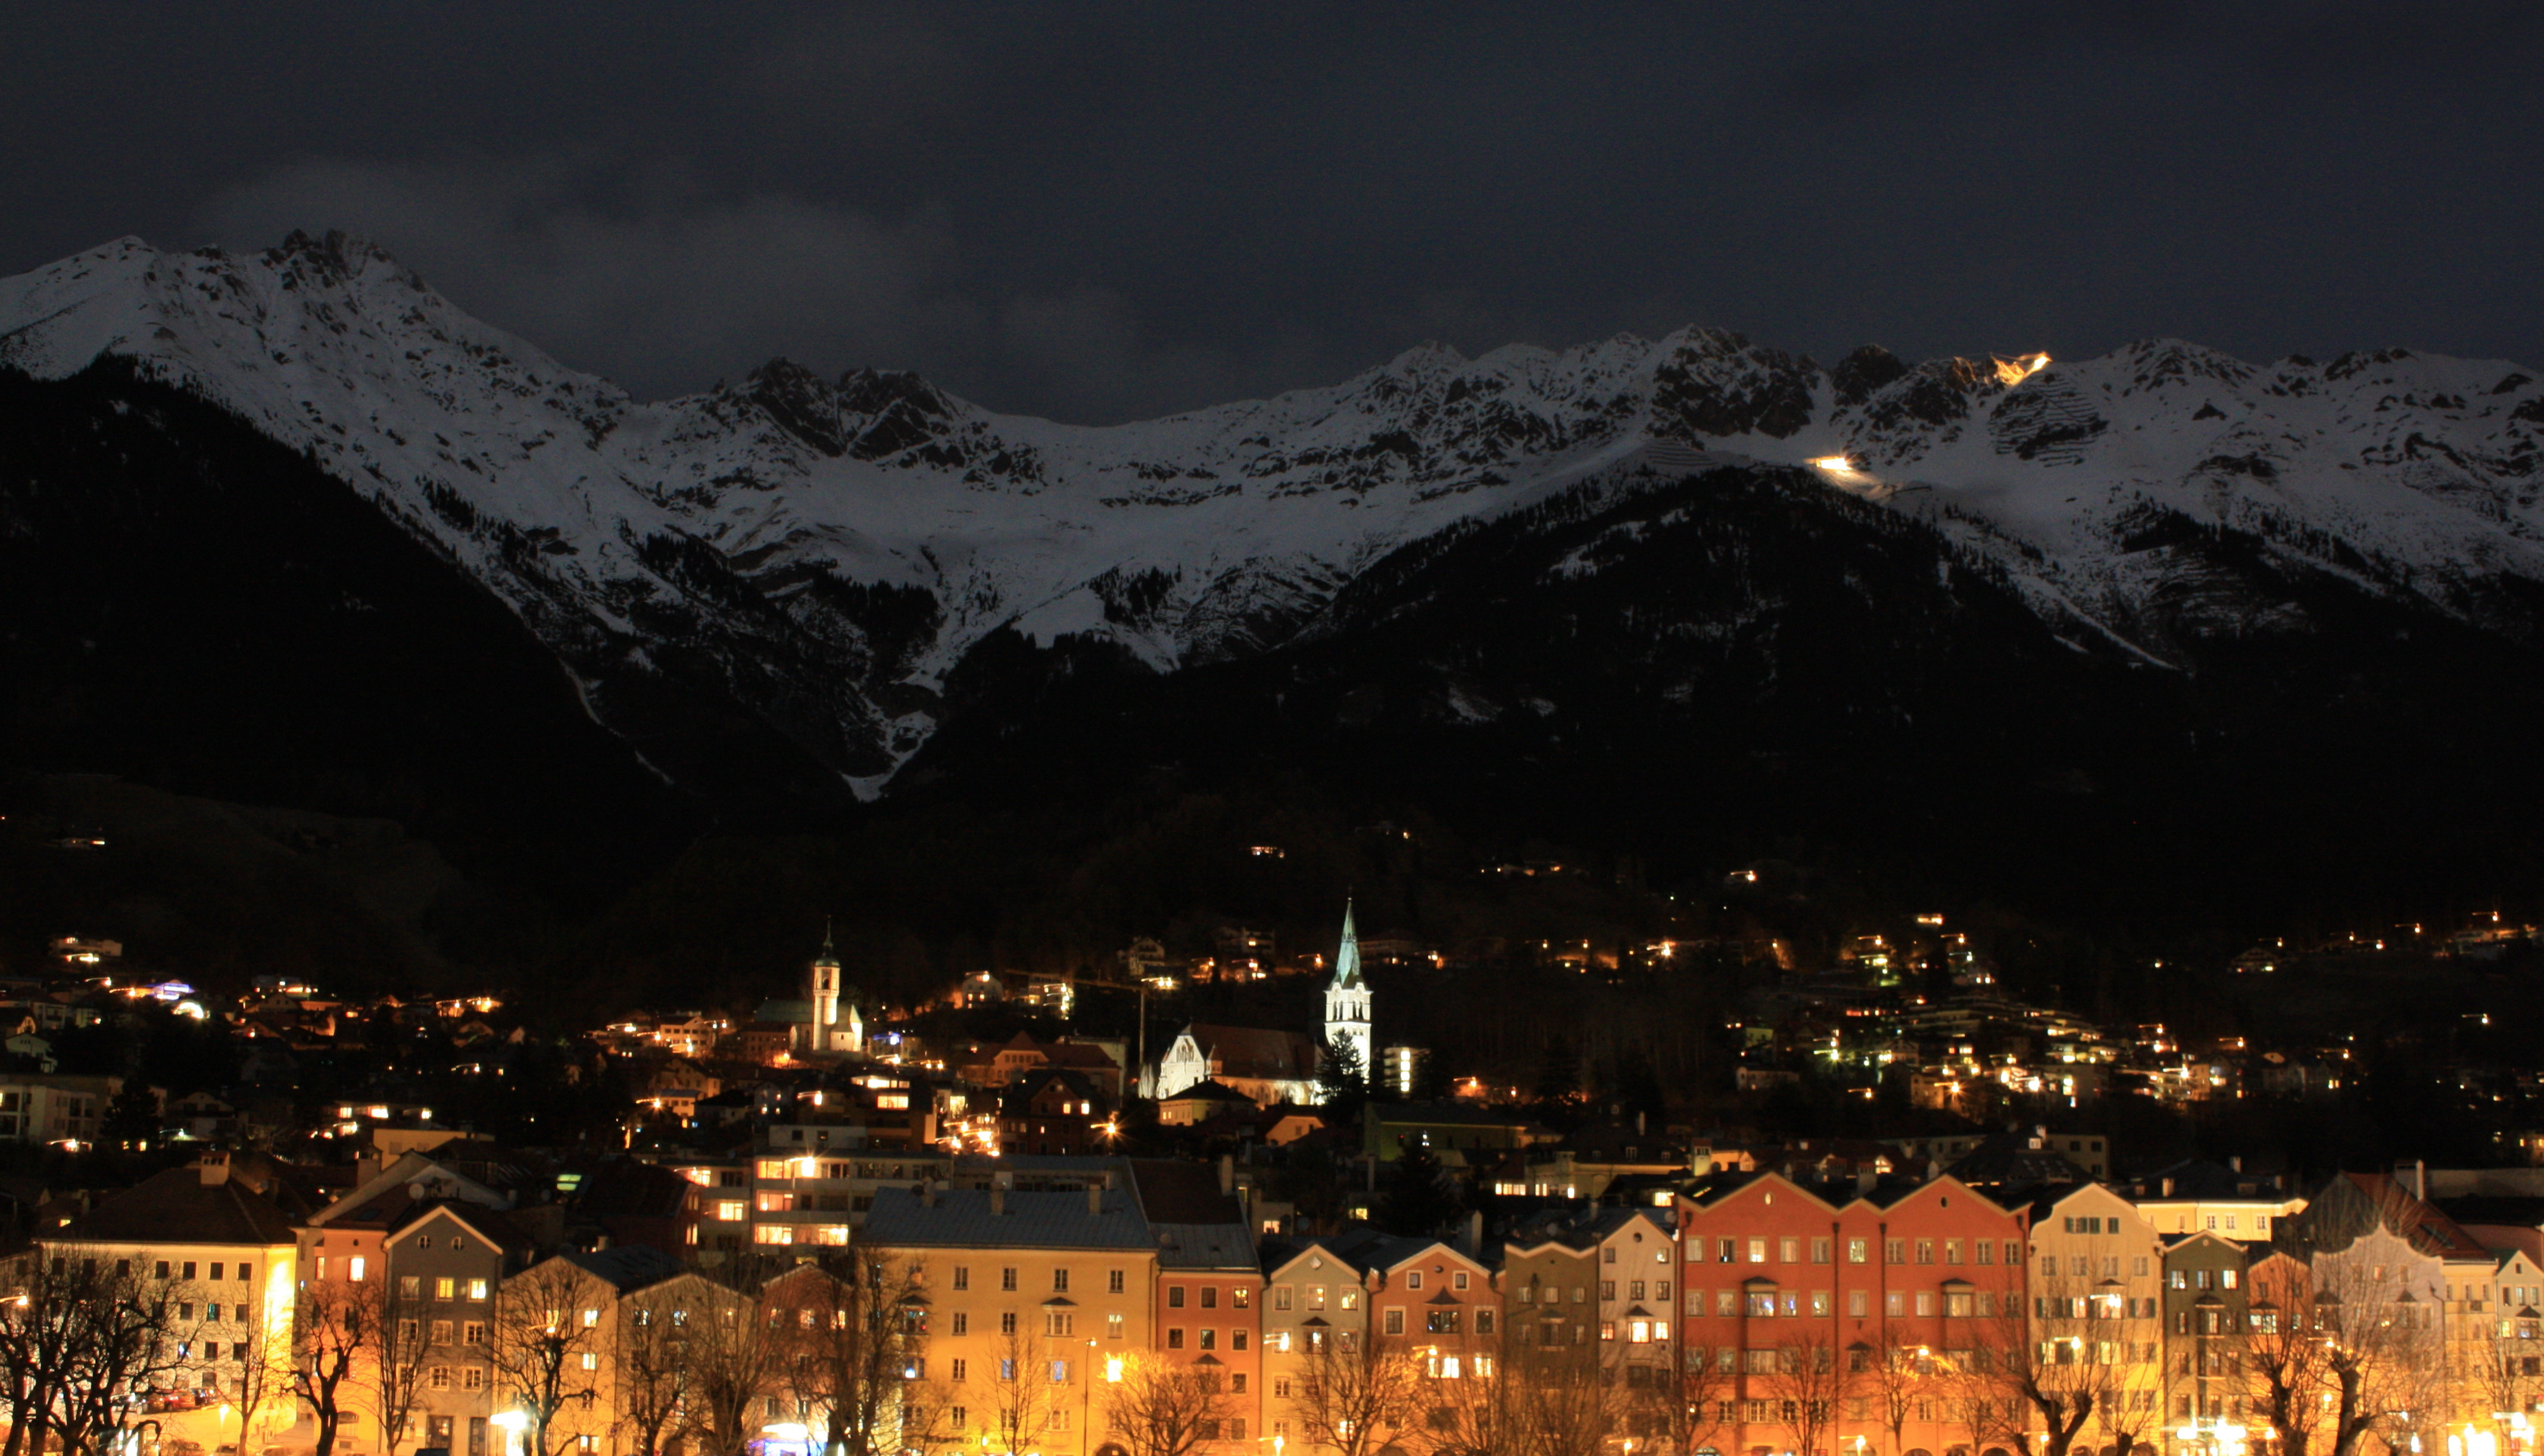 Innsbruck at night1